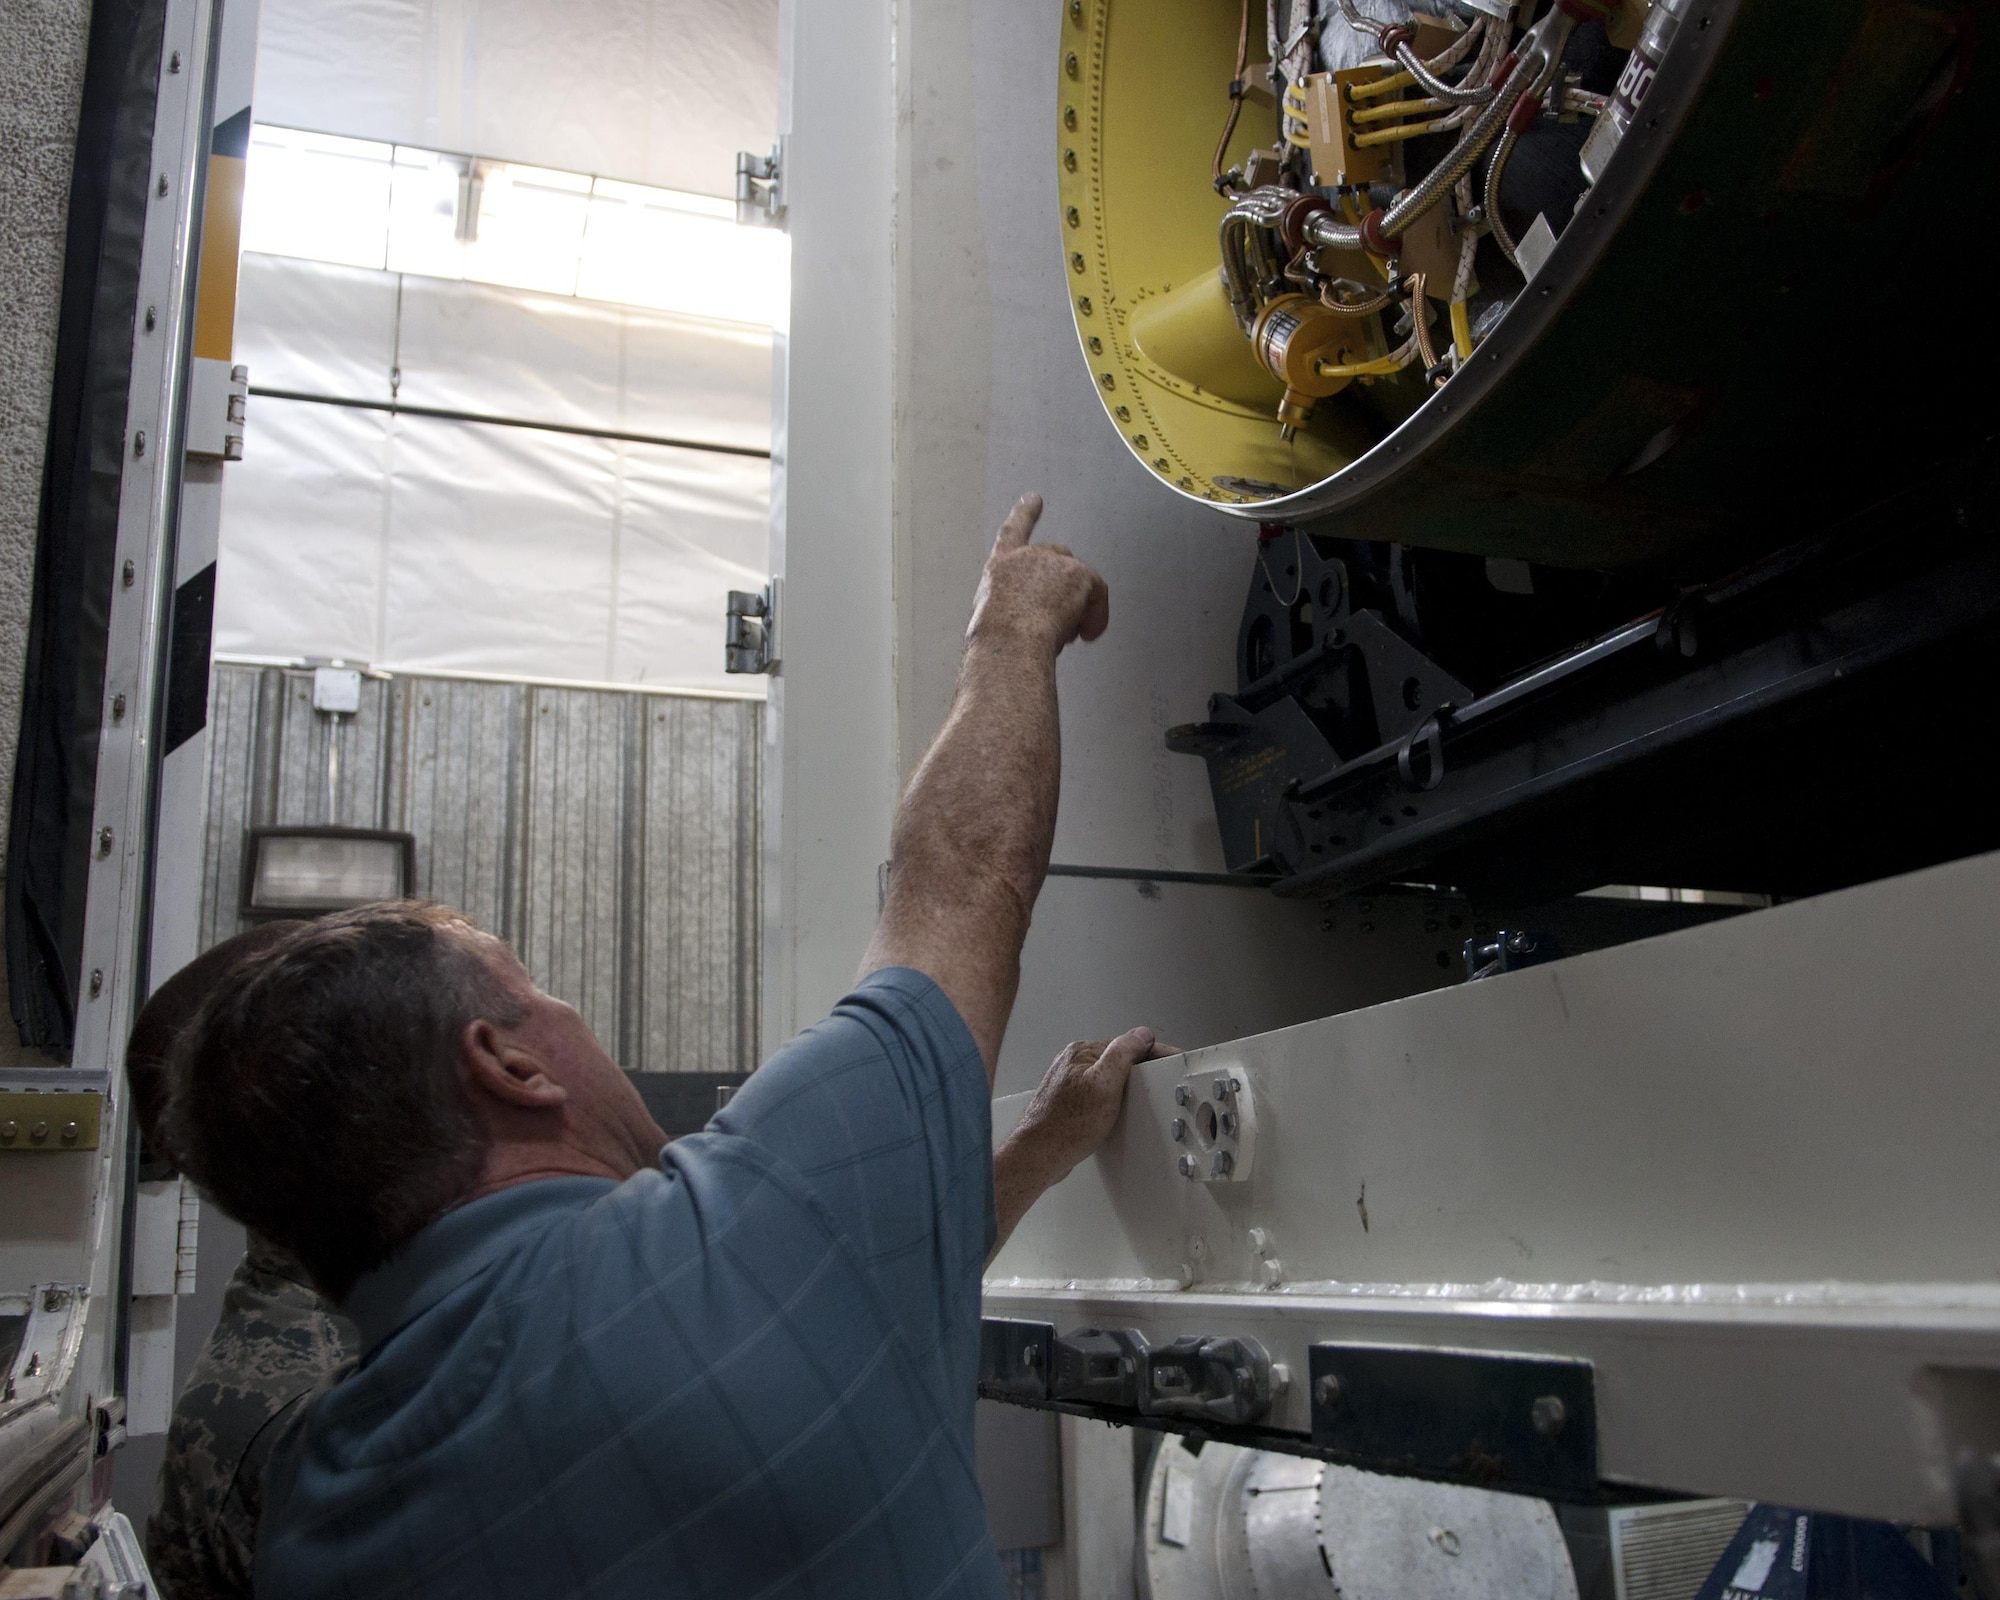 Richard Mullee, the 90th Missile Wing Safety Office missile safety superintendent, examines the midsection of the booster of the Minuteman III ICBM during the 90th Missile Maintenance Squadron's annual weapons safety inspection June 9, 2015, on F.E. Warren Air Force Base, Wyo. Inspections play a vital part in the mission of the weapon safety office. They provide the office the opportunity to see the mission and work environment firsthand, in order to catch any issues before they worsen. (U.S. Air Force photo/Airman 1st Class Malcolm Mayfield)